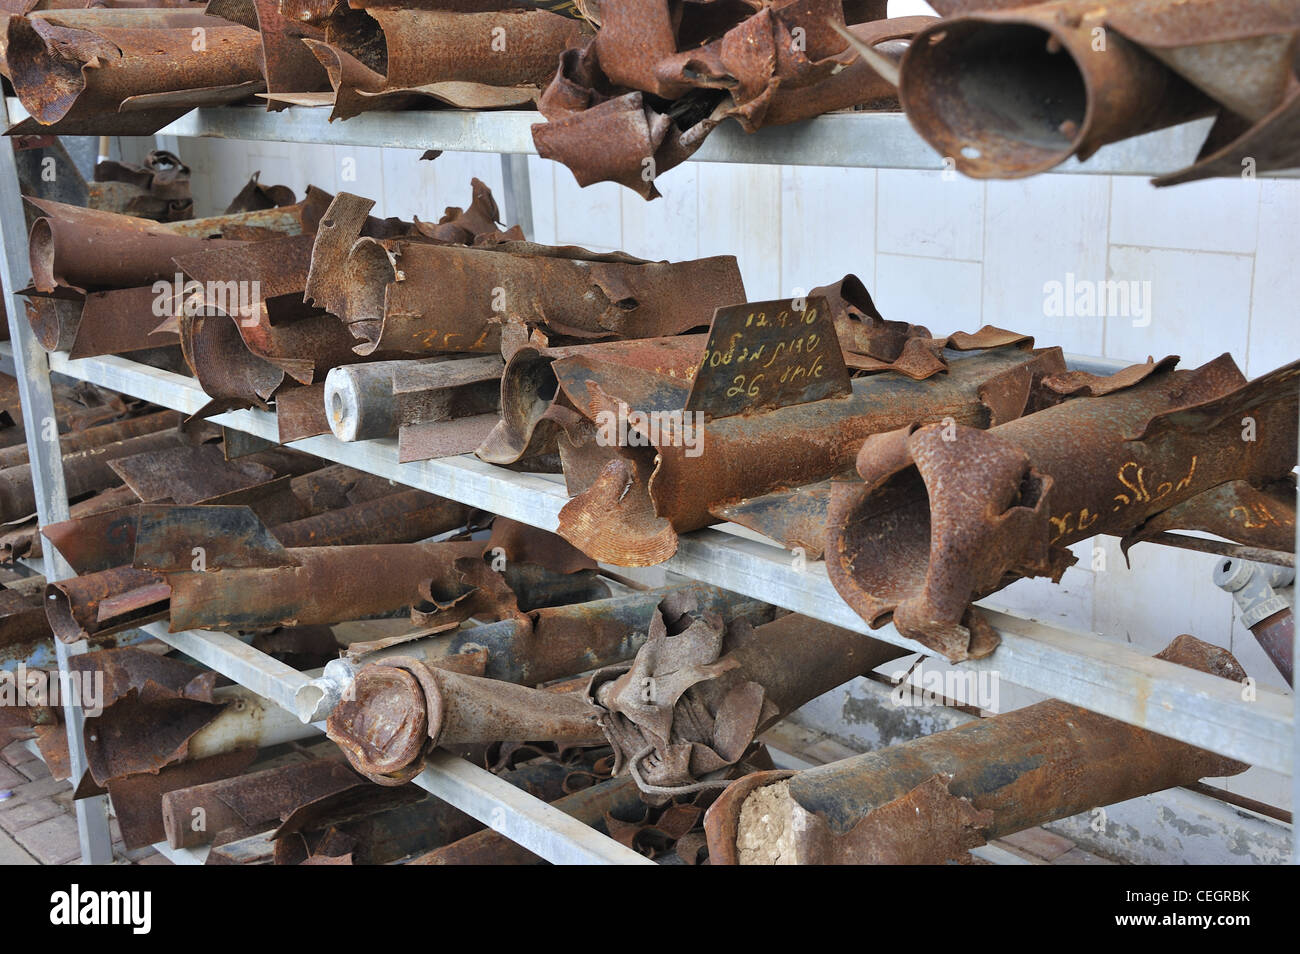 Remains of several rocket sent from Gaza strip at the city of Sderot in Israel - Stock Image